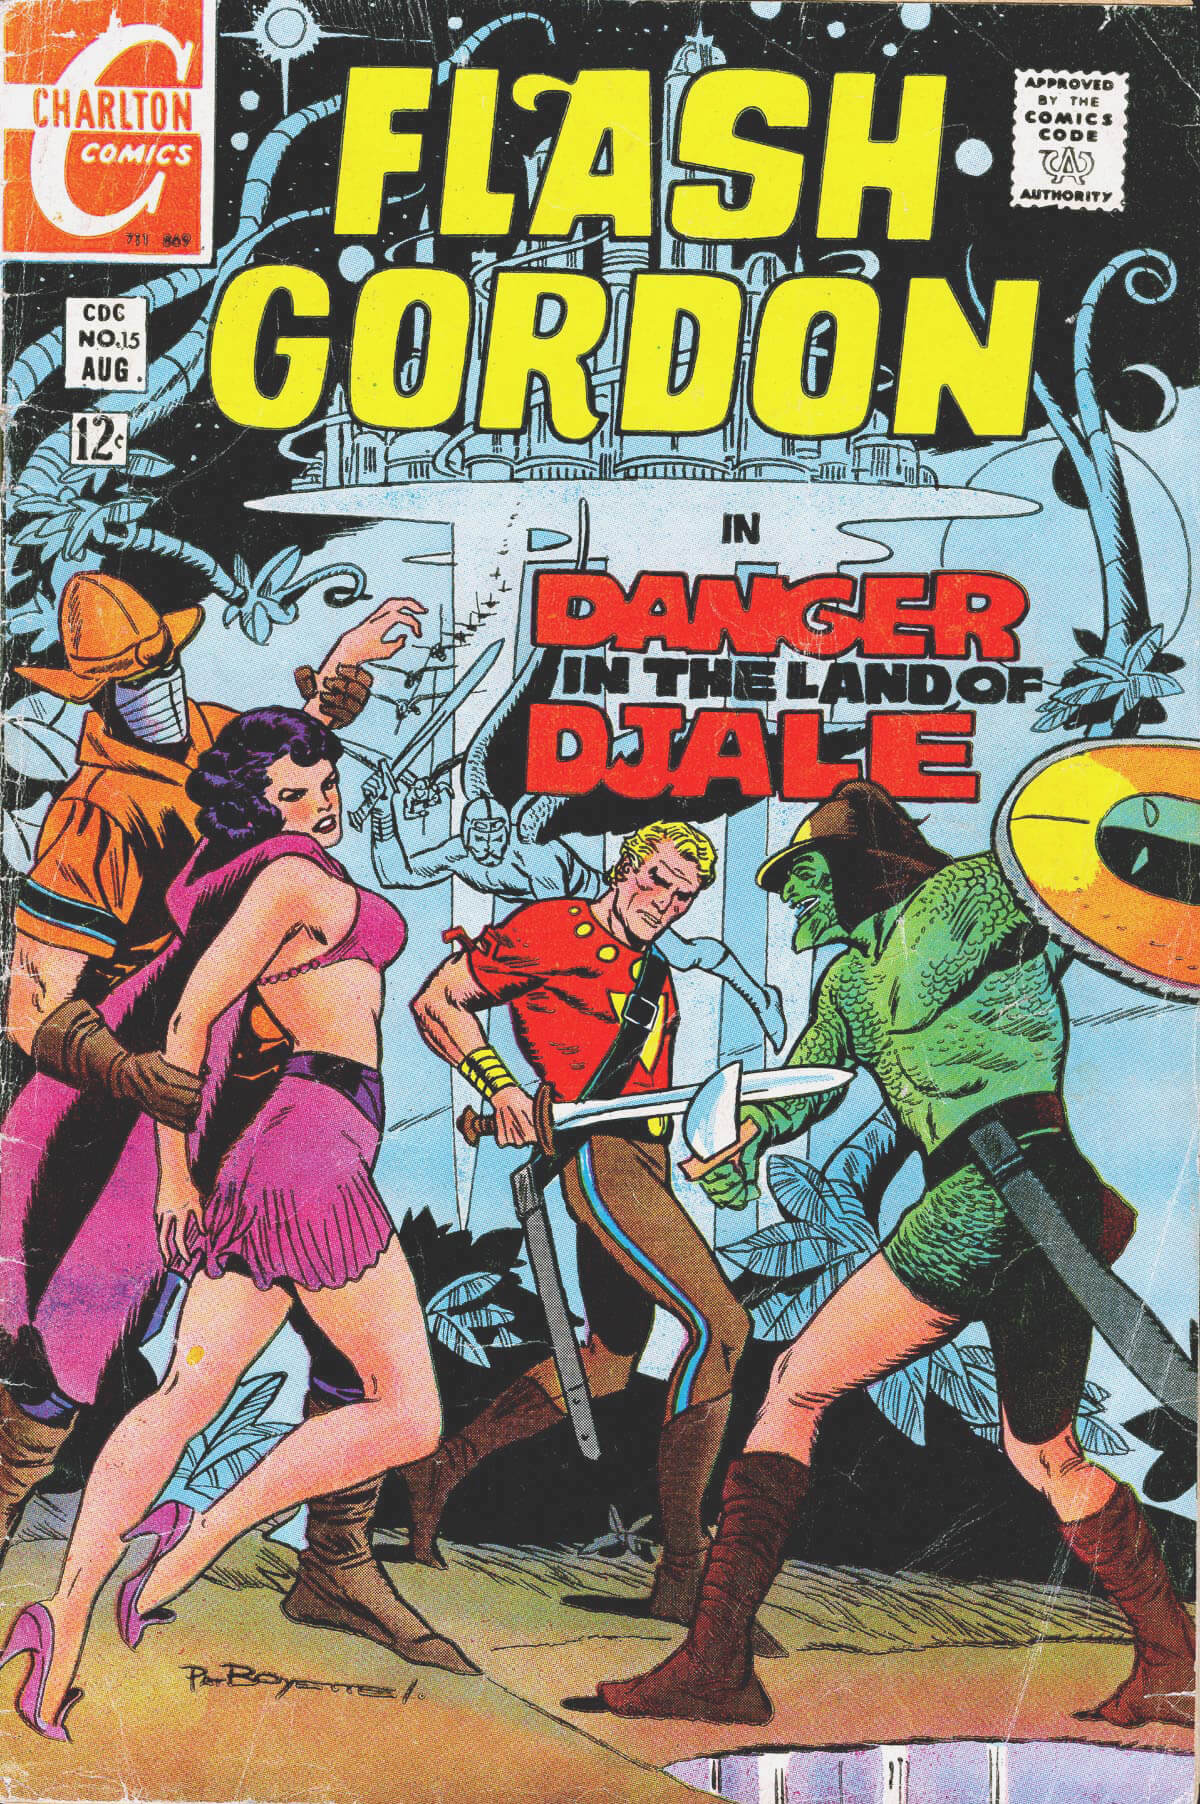 Flash Gordon 15 from Charlton Comics